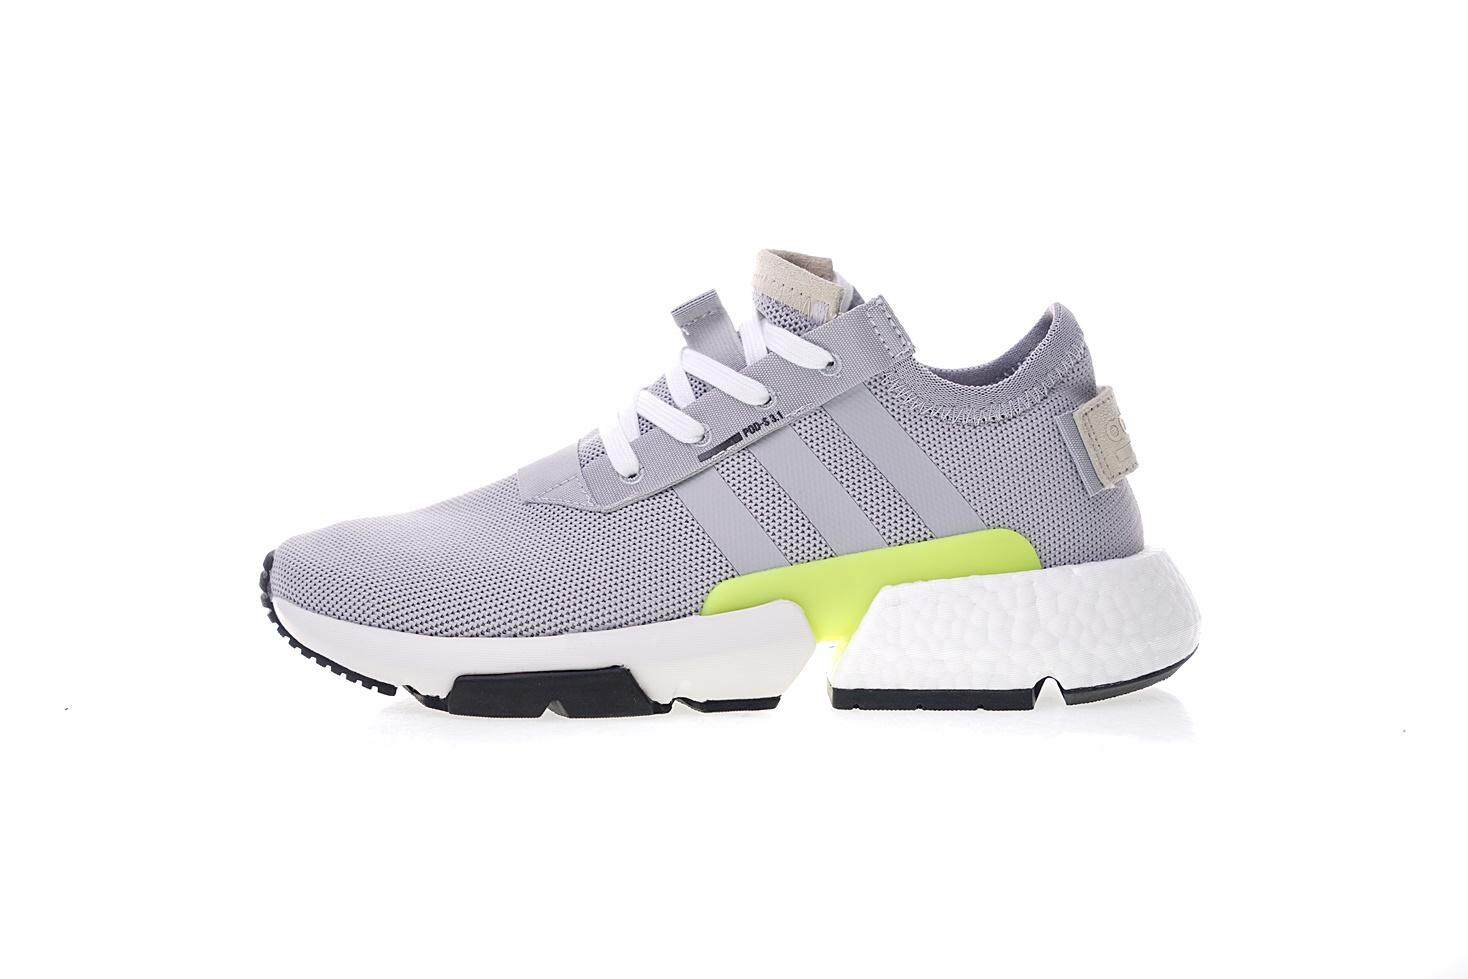 4994dc6a44f37 Adidas Originals POD-S3.1 Boost Men s Breathable Running Sneaker Fashion  Light Sport Shoes